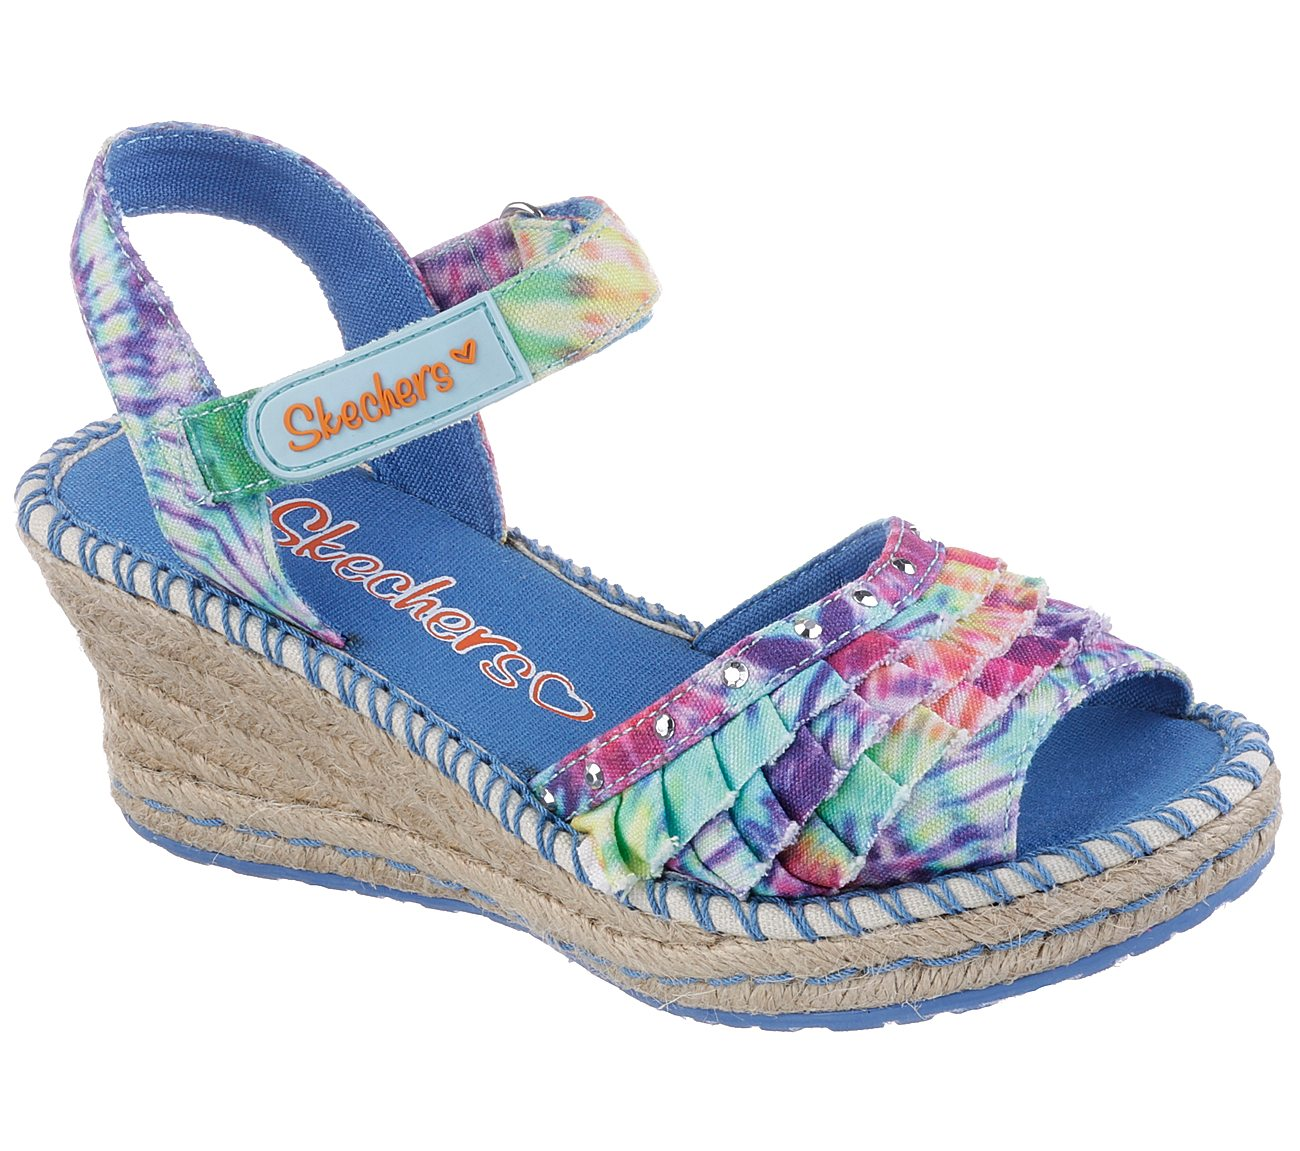 003a7af12687 Buy SKECHERS Tikis - Ruffle Ups Strappy Sandals Shoes only  36.00